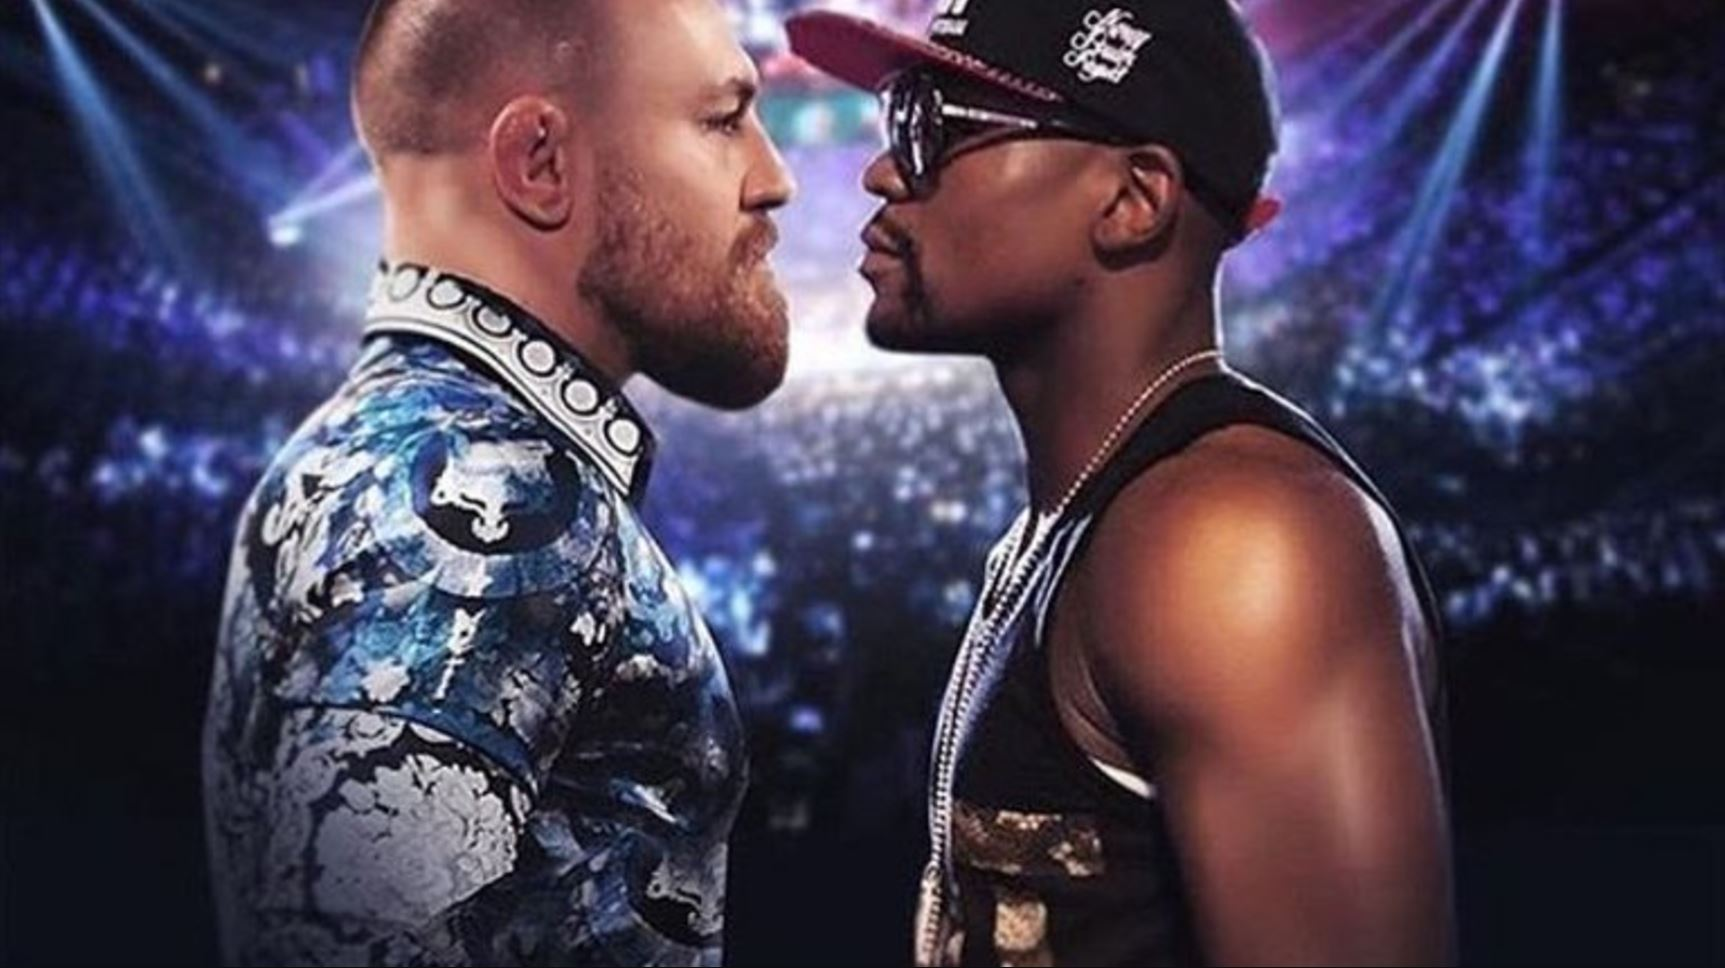 Conor McGregor V.S Floyd Mayweather: Who will Win?